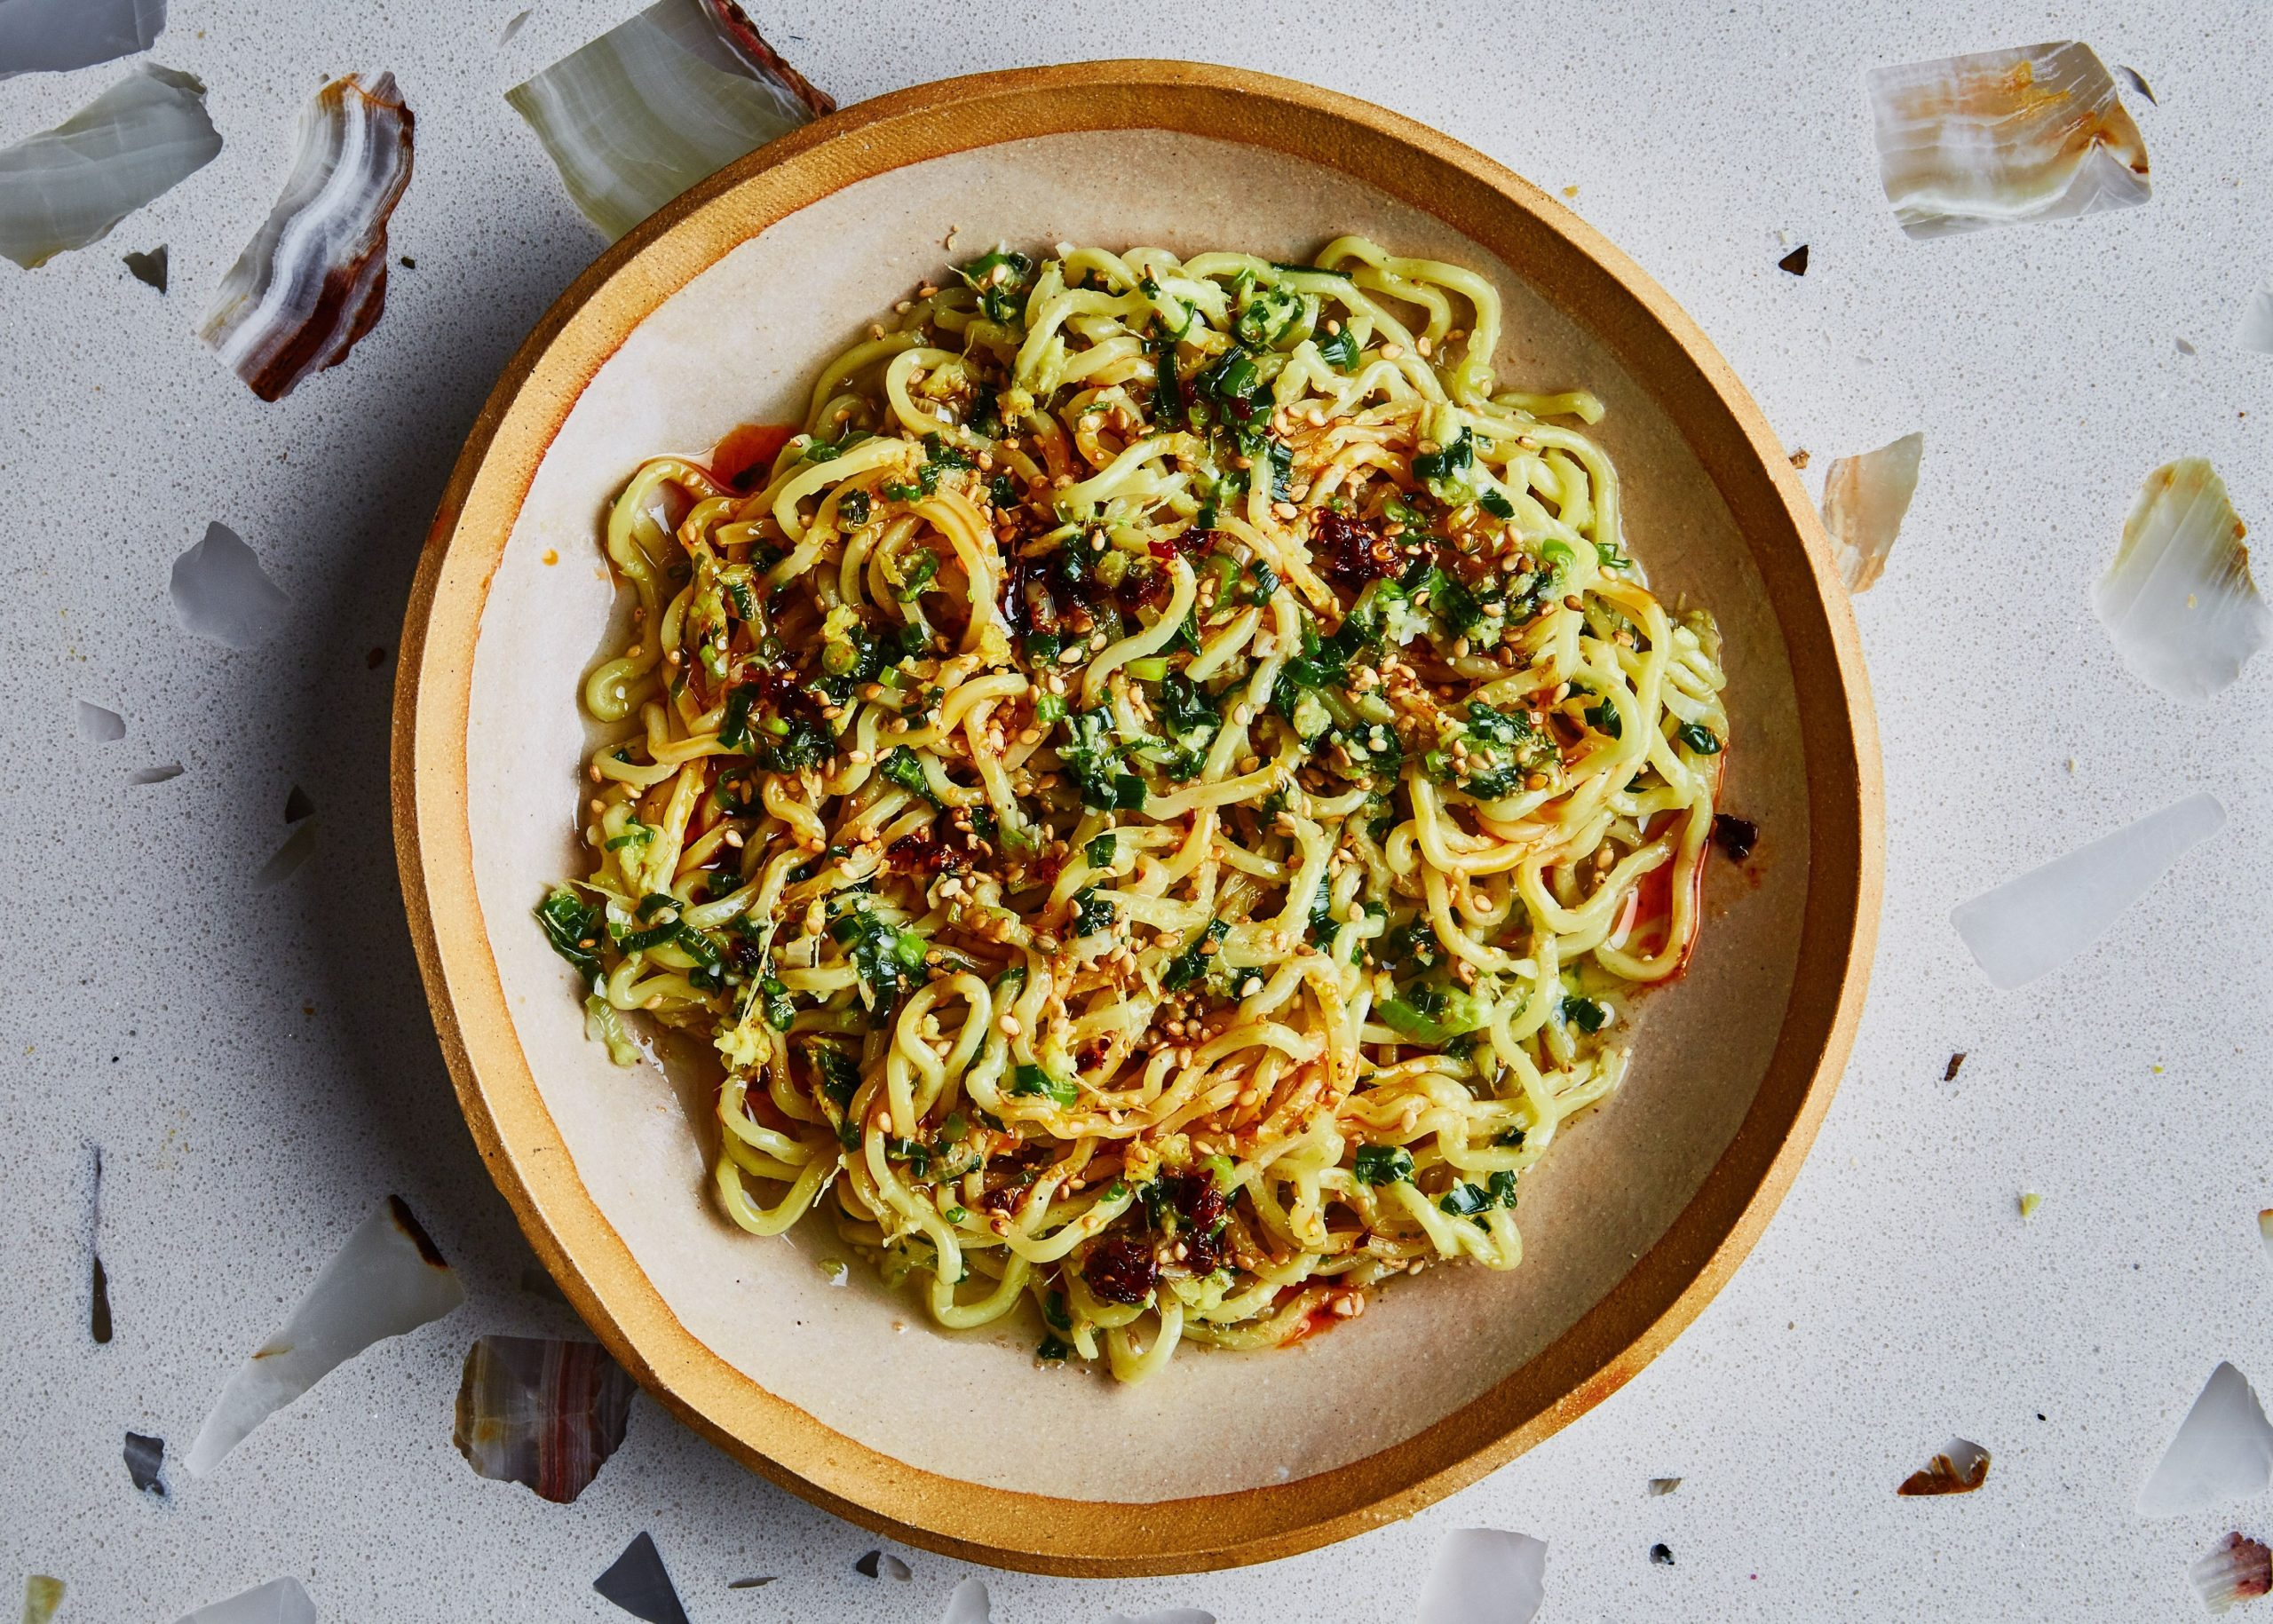 8 Easy Lunch Ideas for Eating at Home | Epicurious - Easy Recipes Epicurious